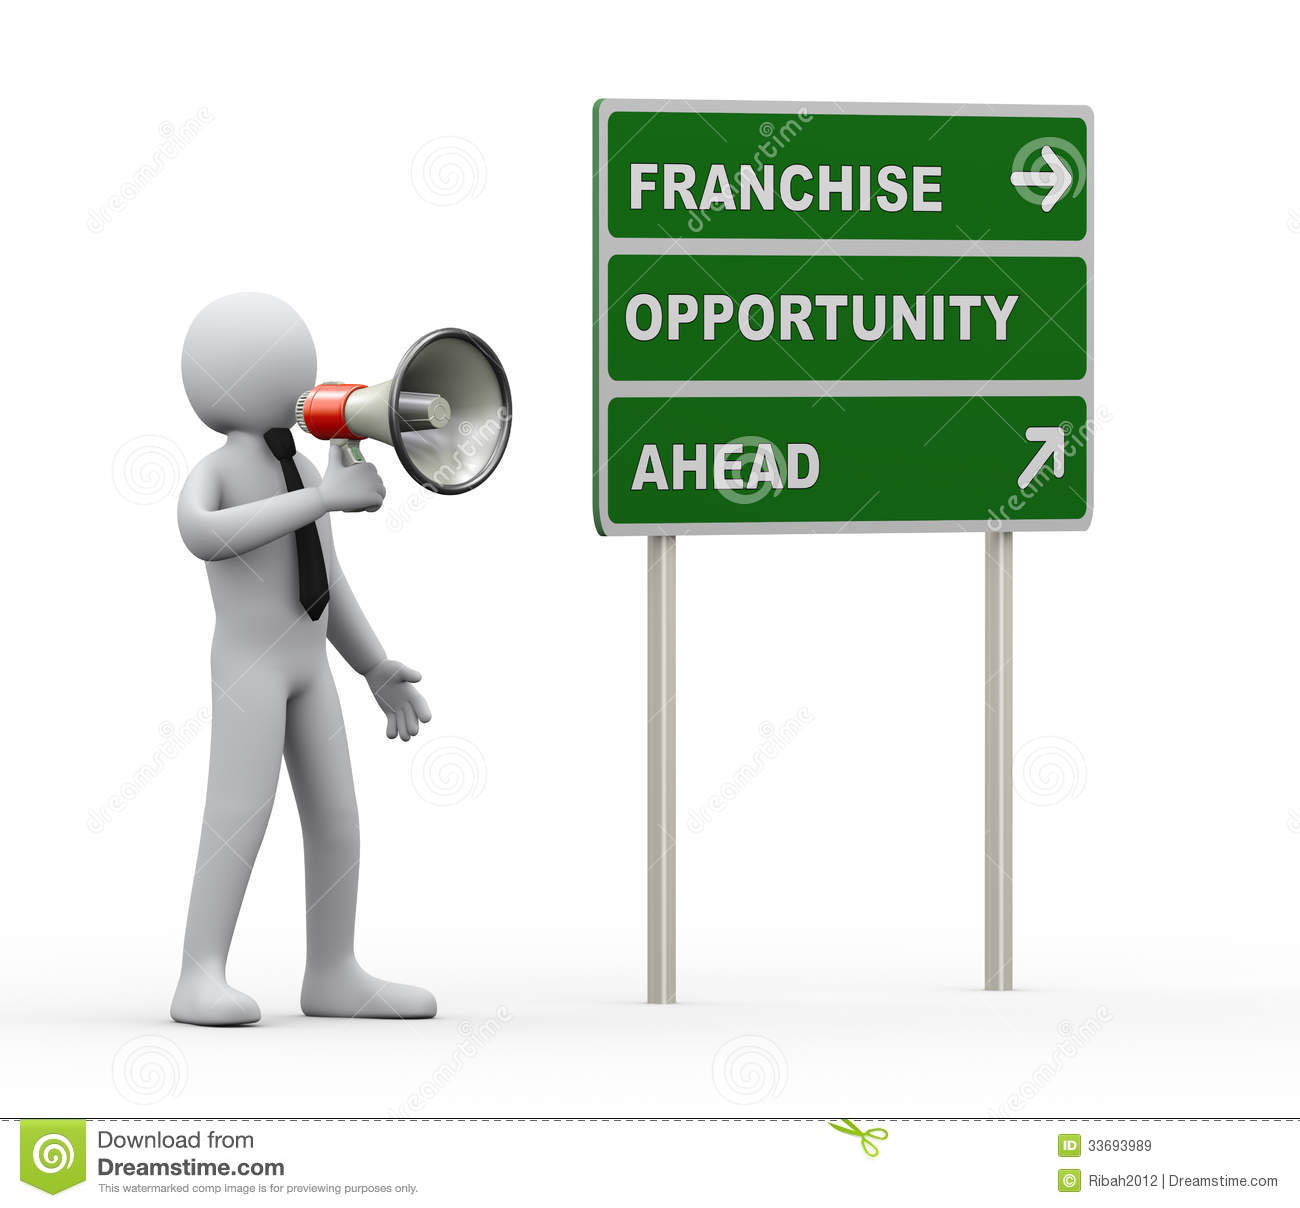 Home Based Business Franchise